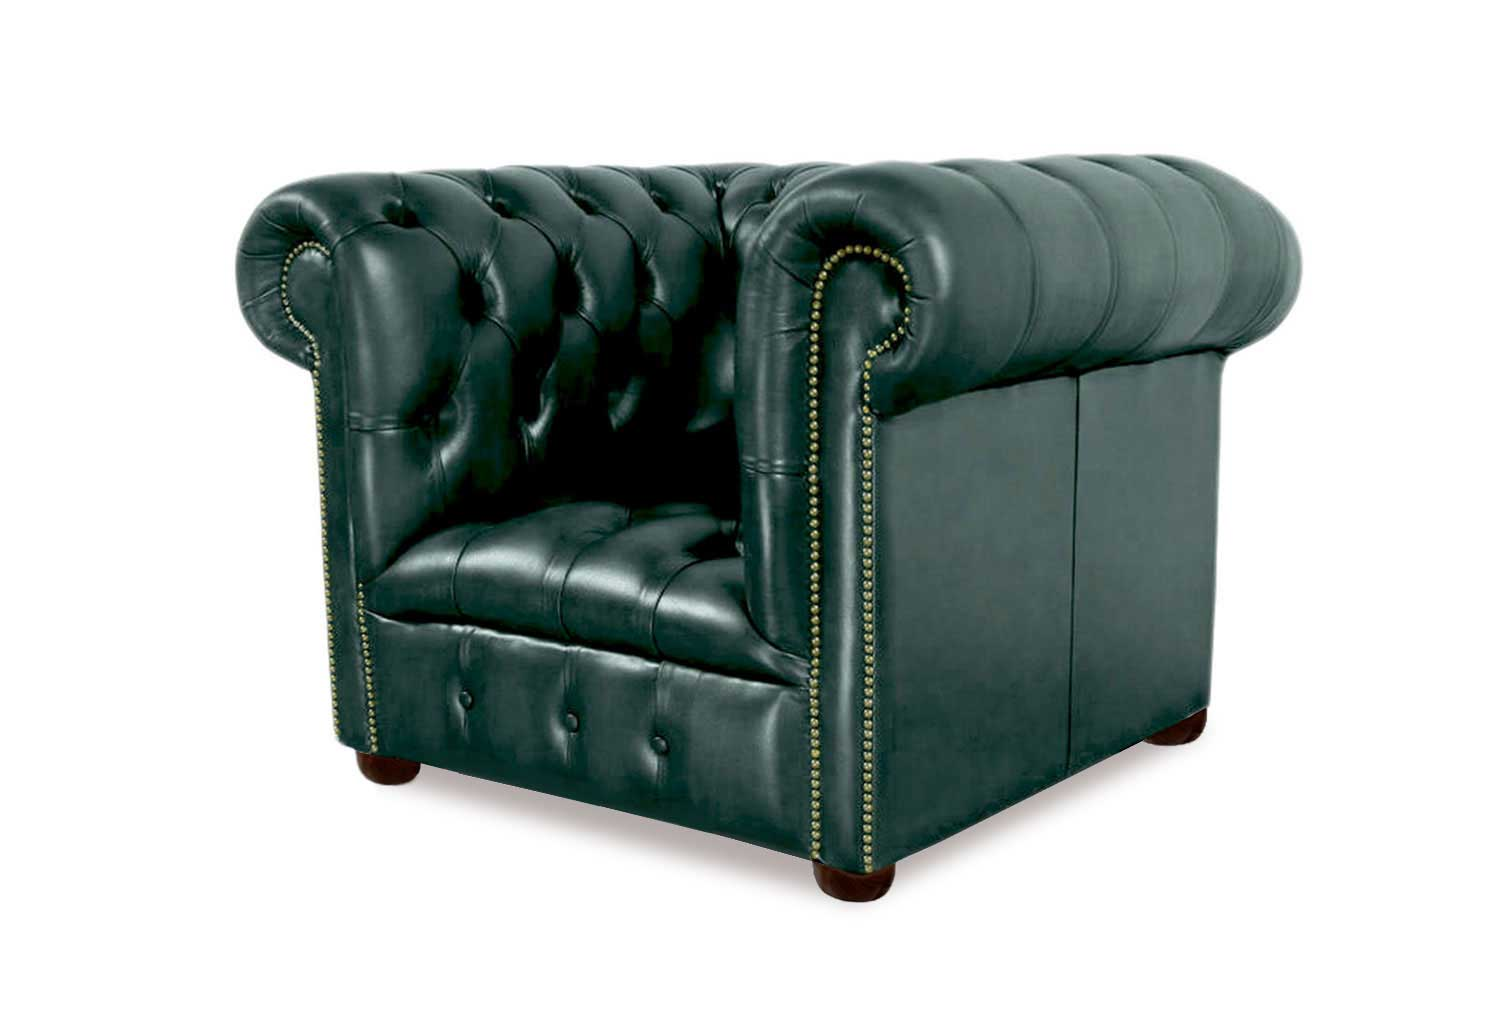 Sessel Polstern Hamburg Chesterfield Garnitur Bingley Chesterfield Sessel